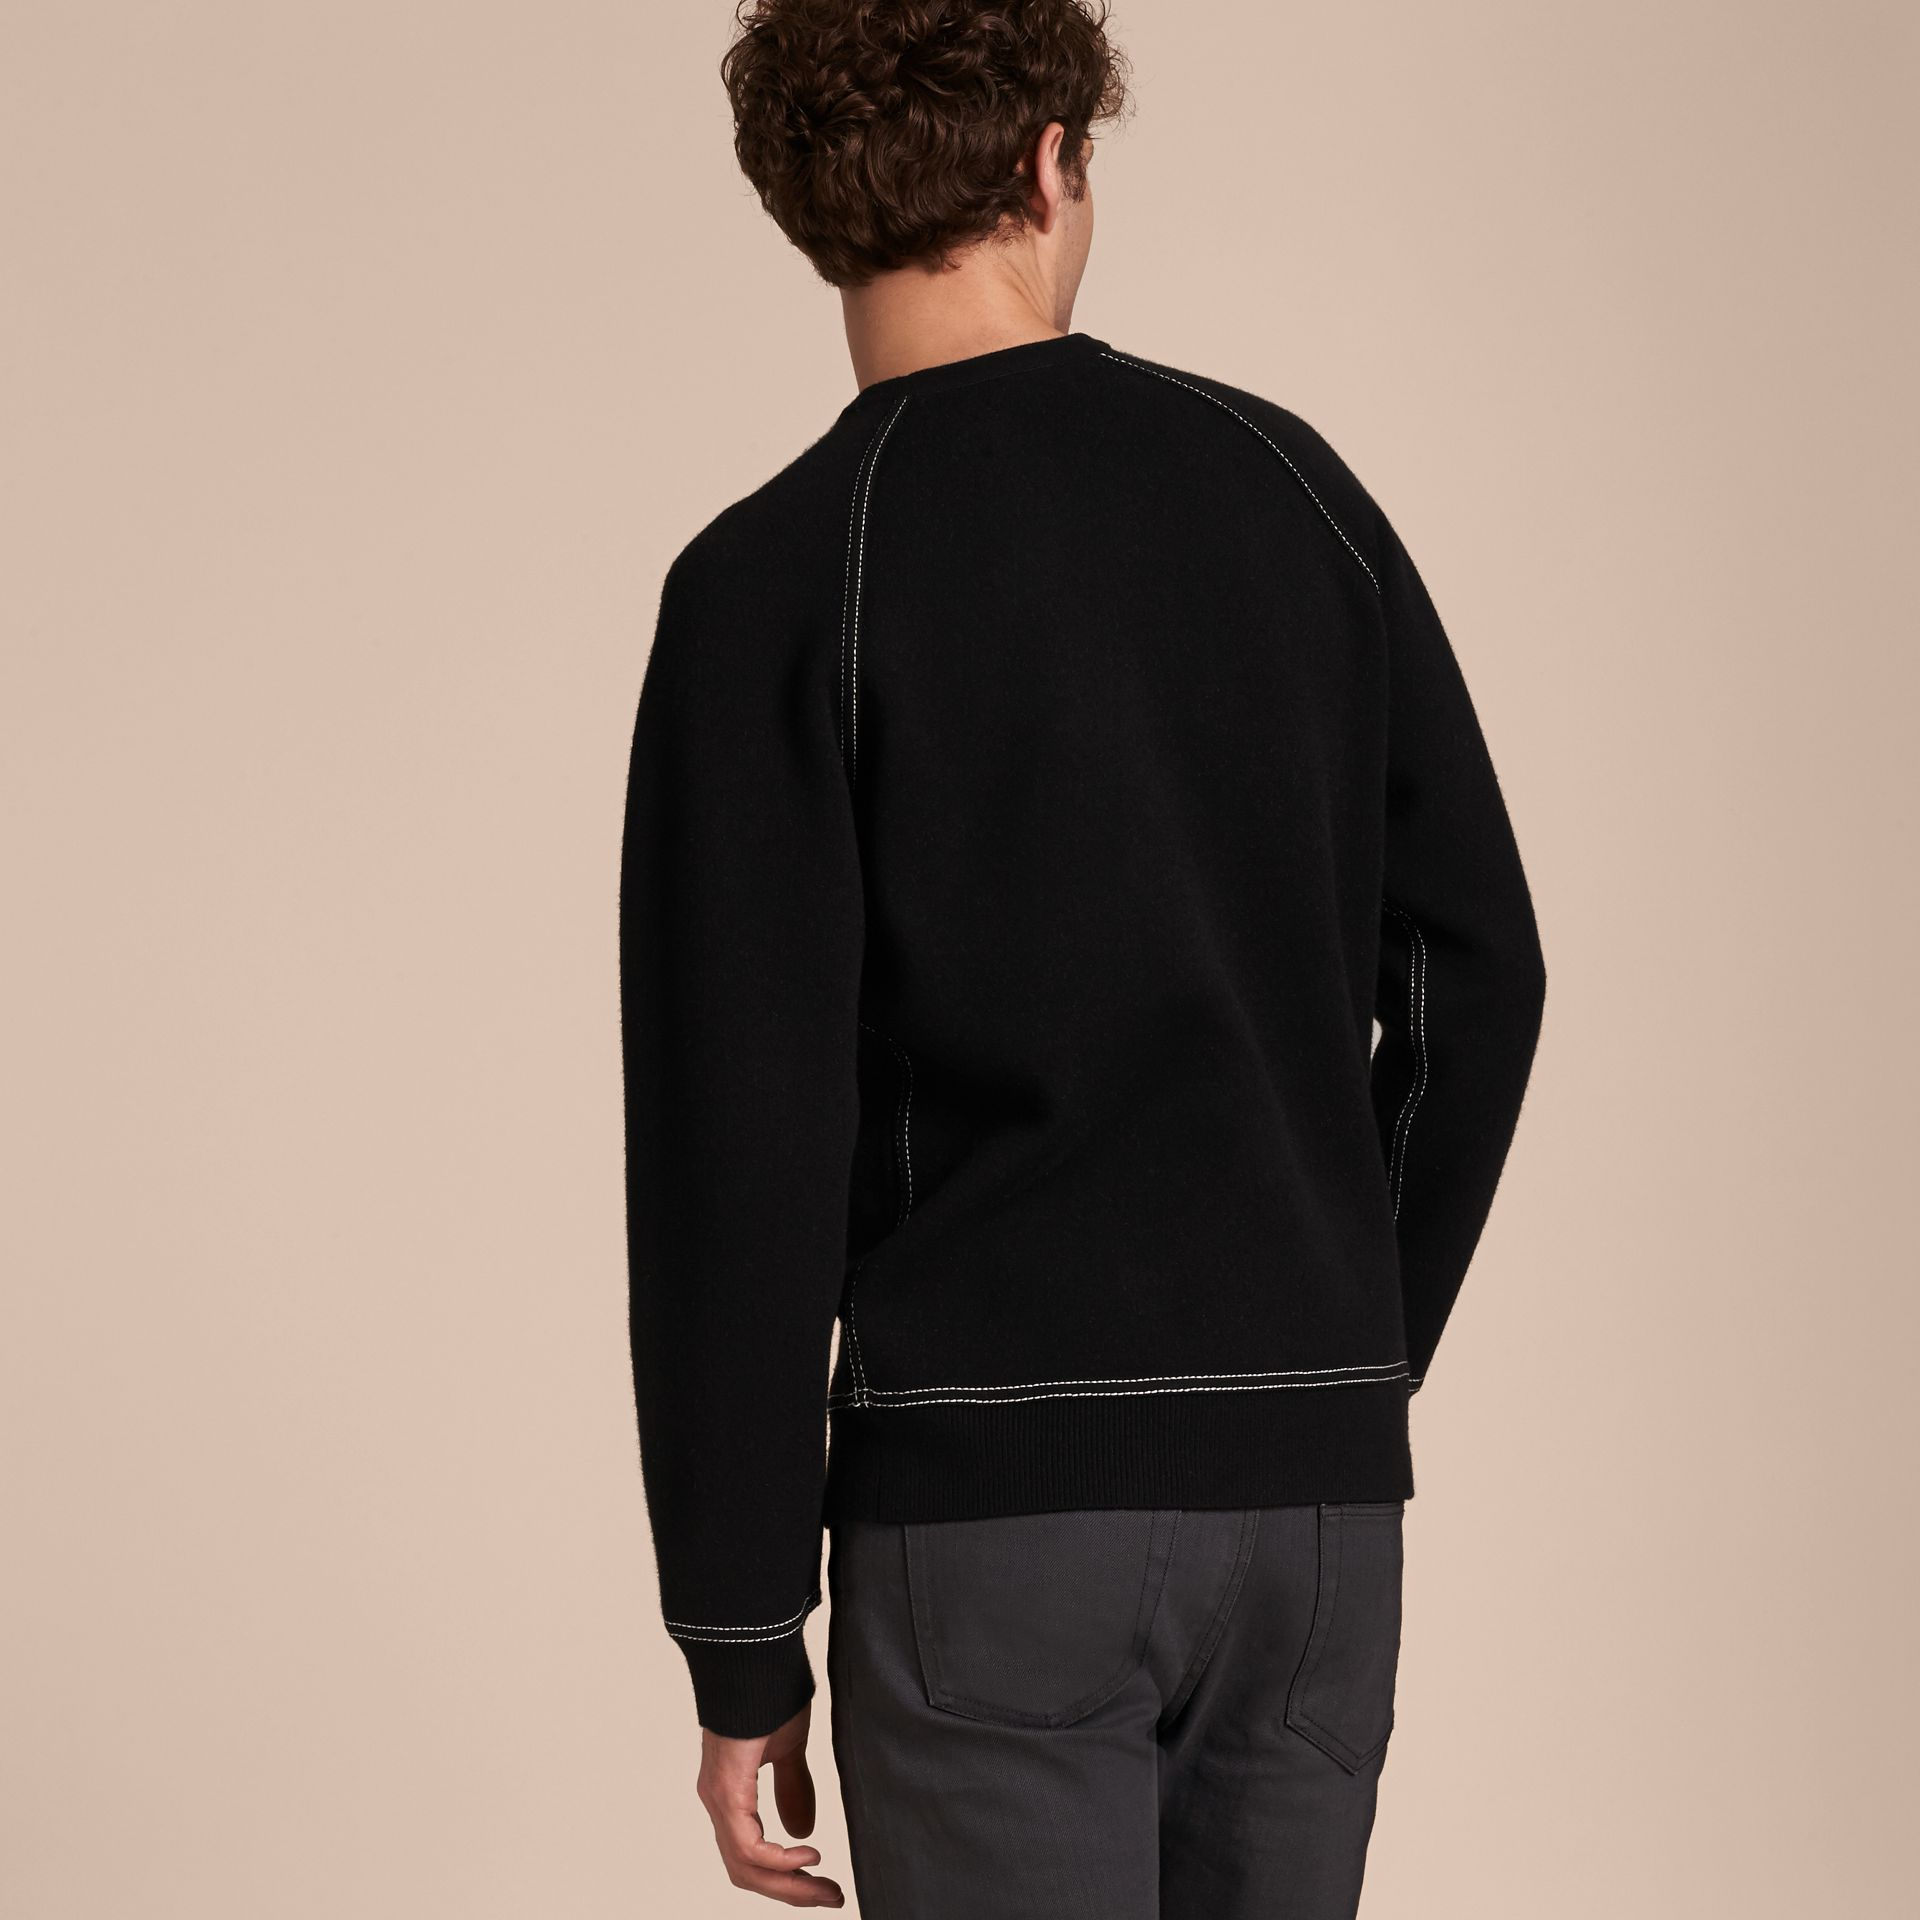 Topstitch Detail Wool Cashmere Blend Sweatshirt in Black - Men | Burberry - gallery image 3